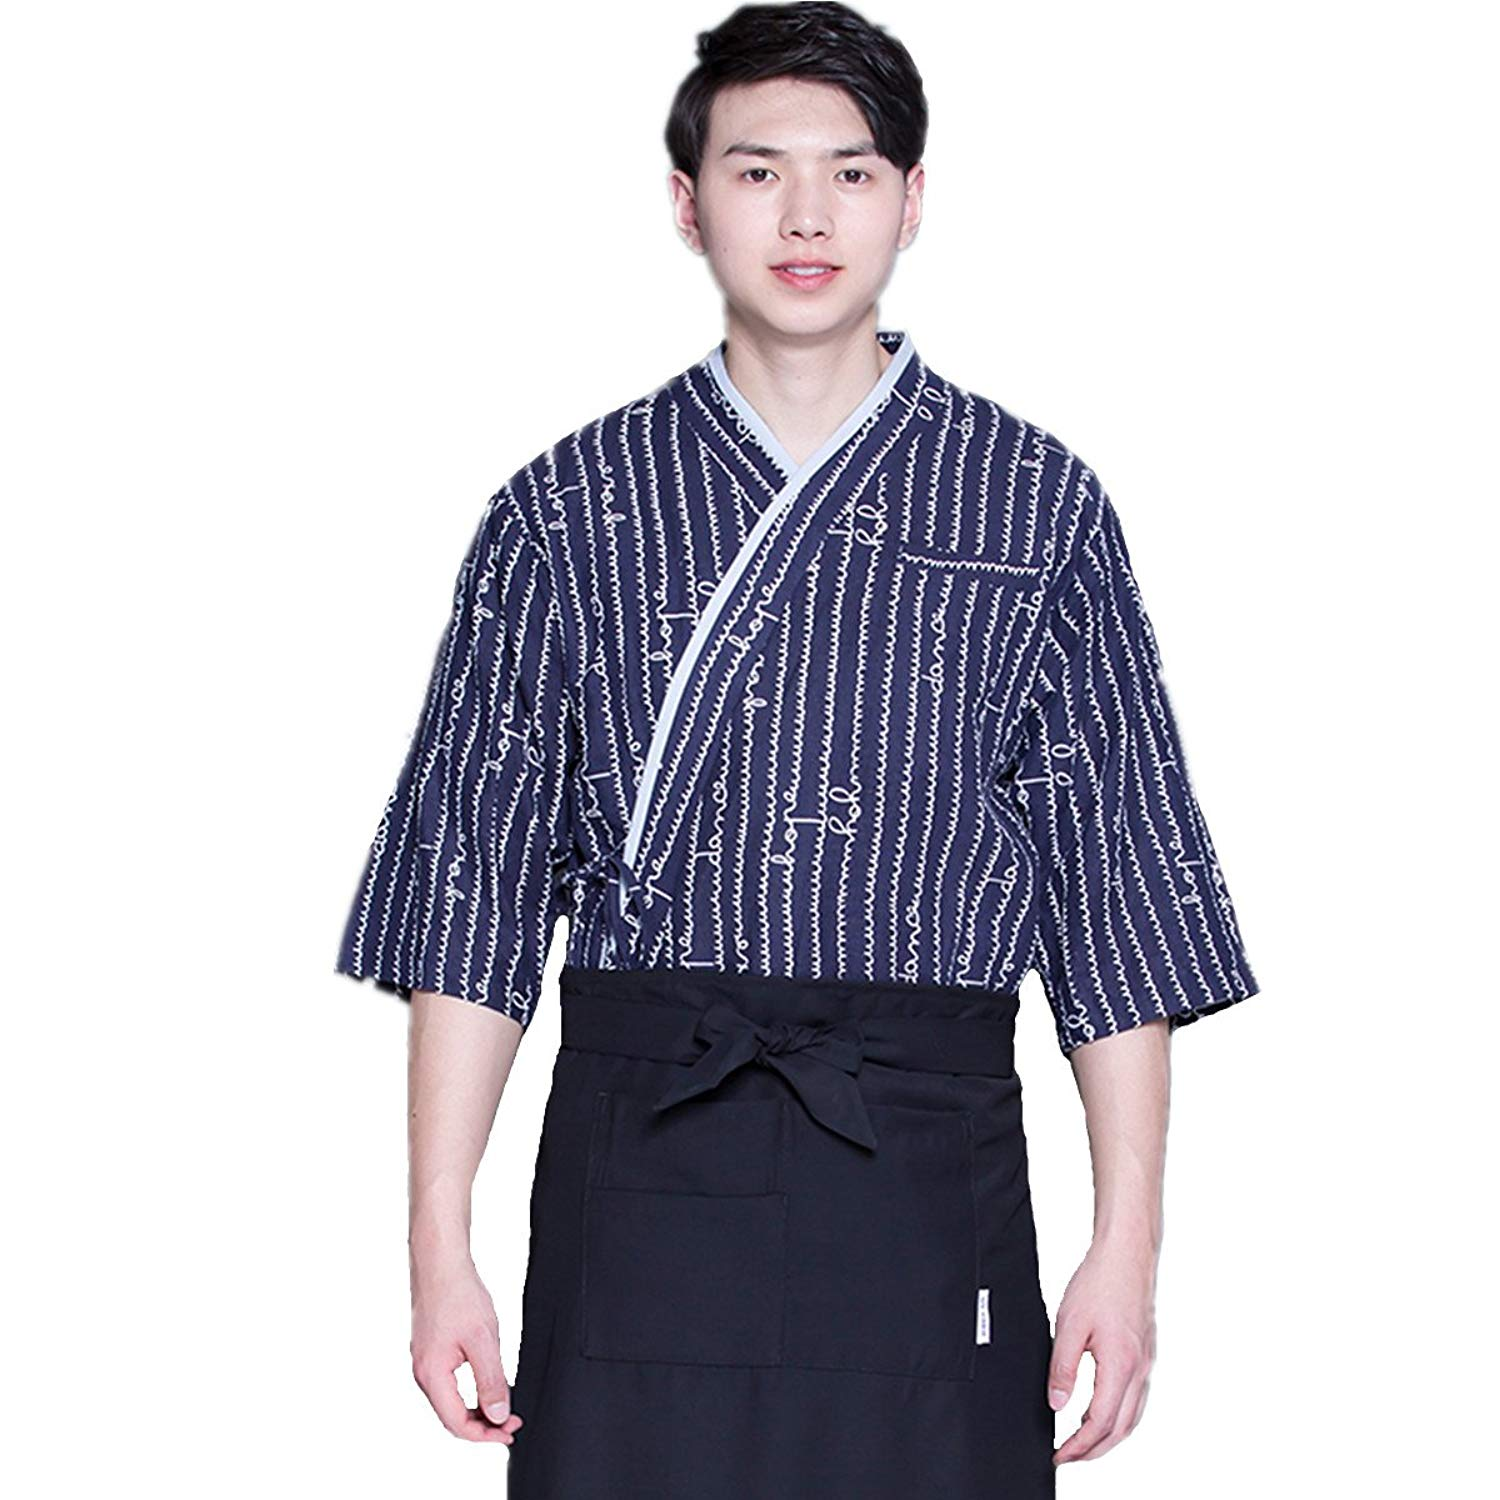 XINFU Sushi Chef Uniform Blue Waves 3/4 Long Sleeve Restaurant Japanese Kitchen Work Coat